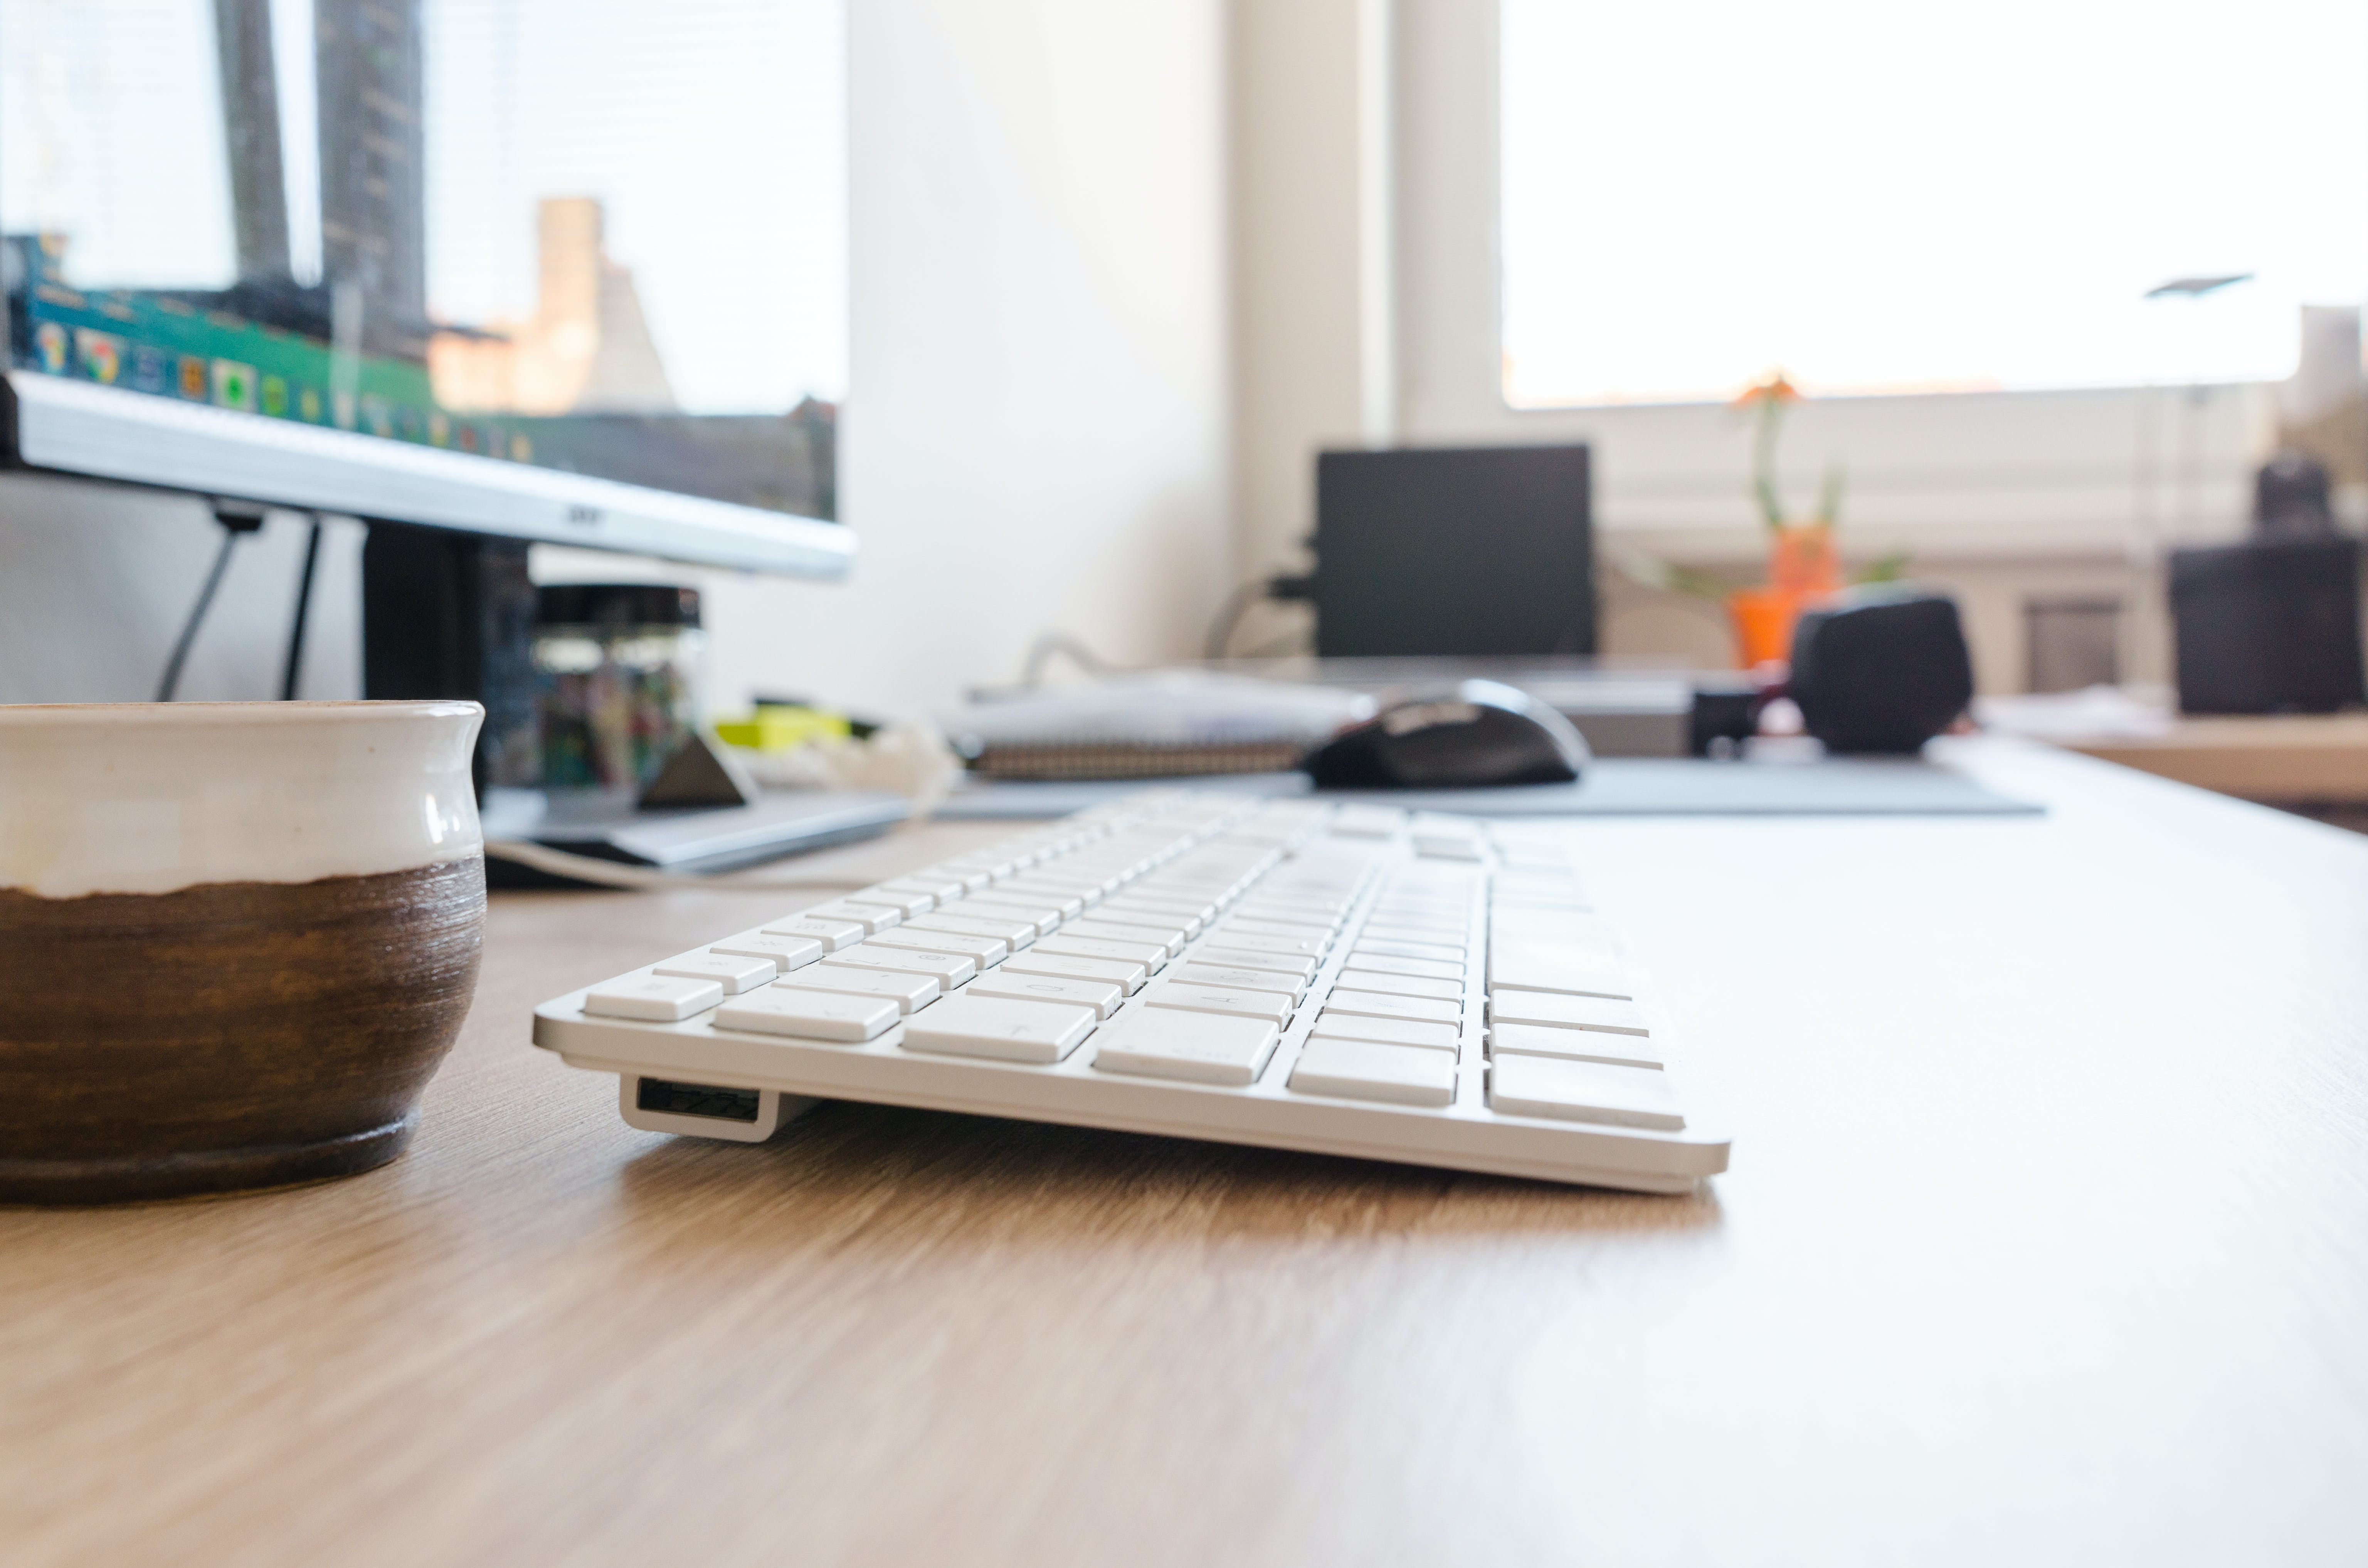 Selective Focus Photography of Wireless Keyboard on Desk